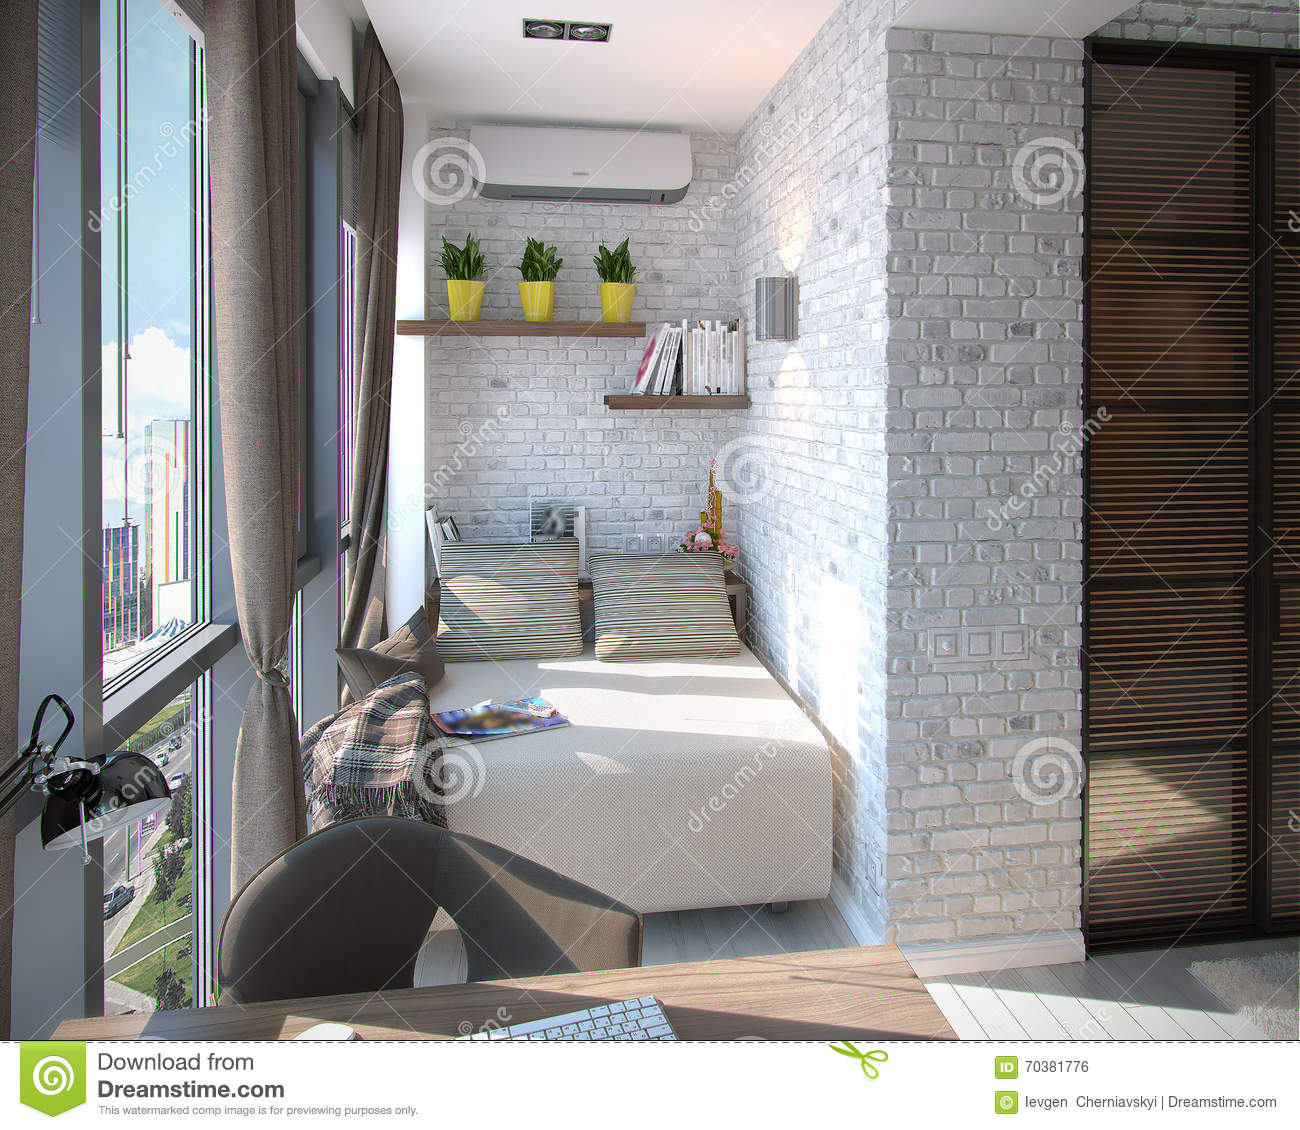 Modern bedroom balcony 3d rendering stock illustration image.